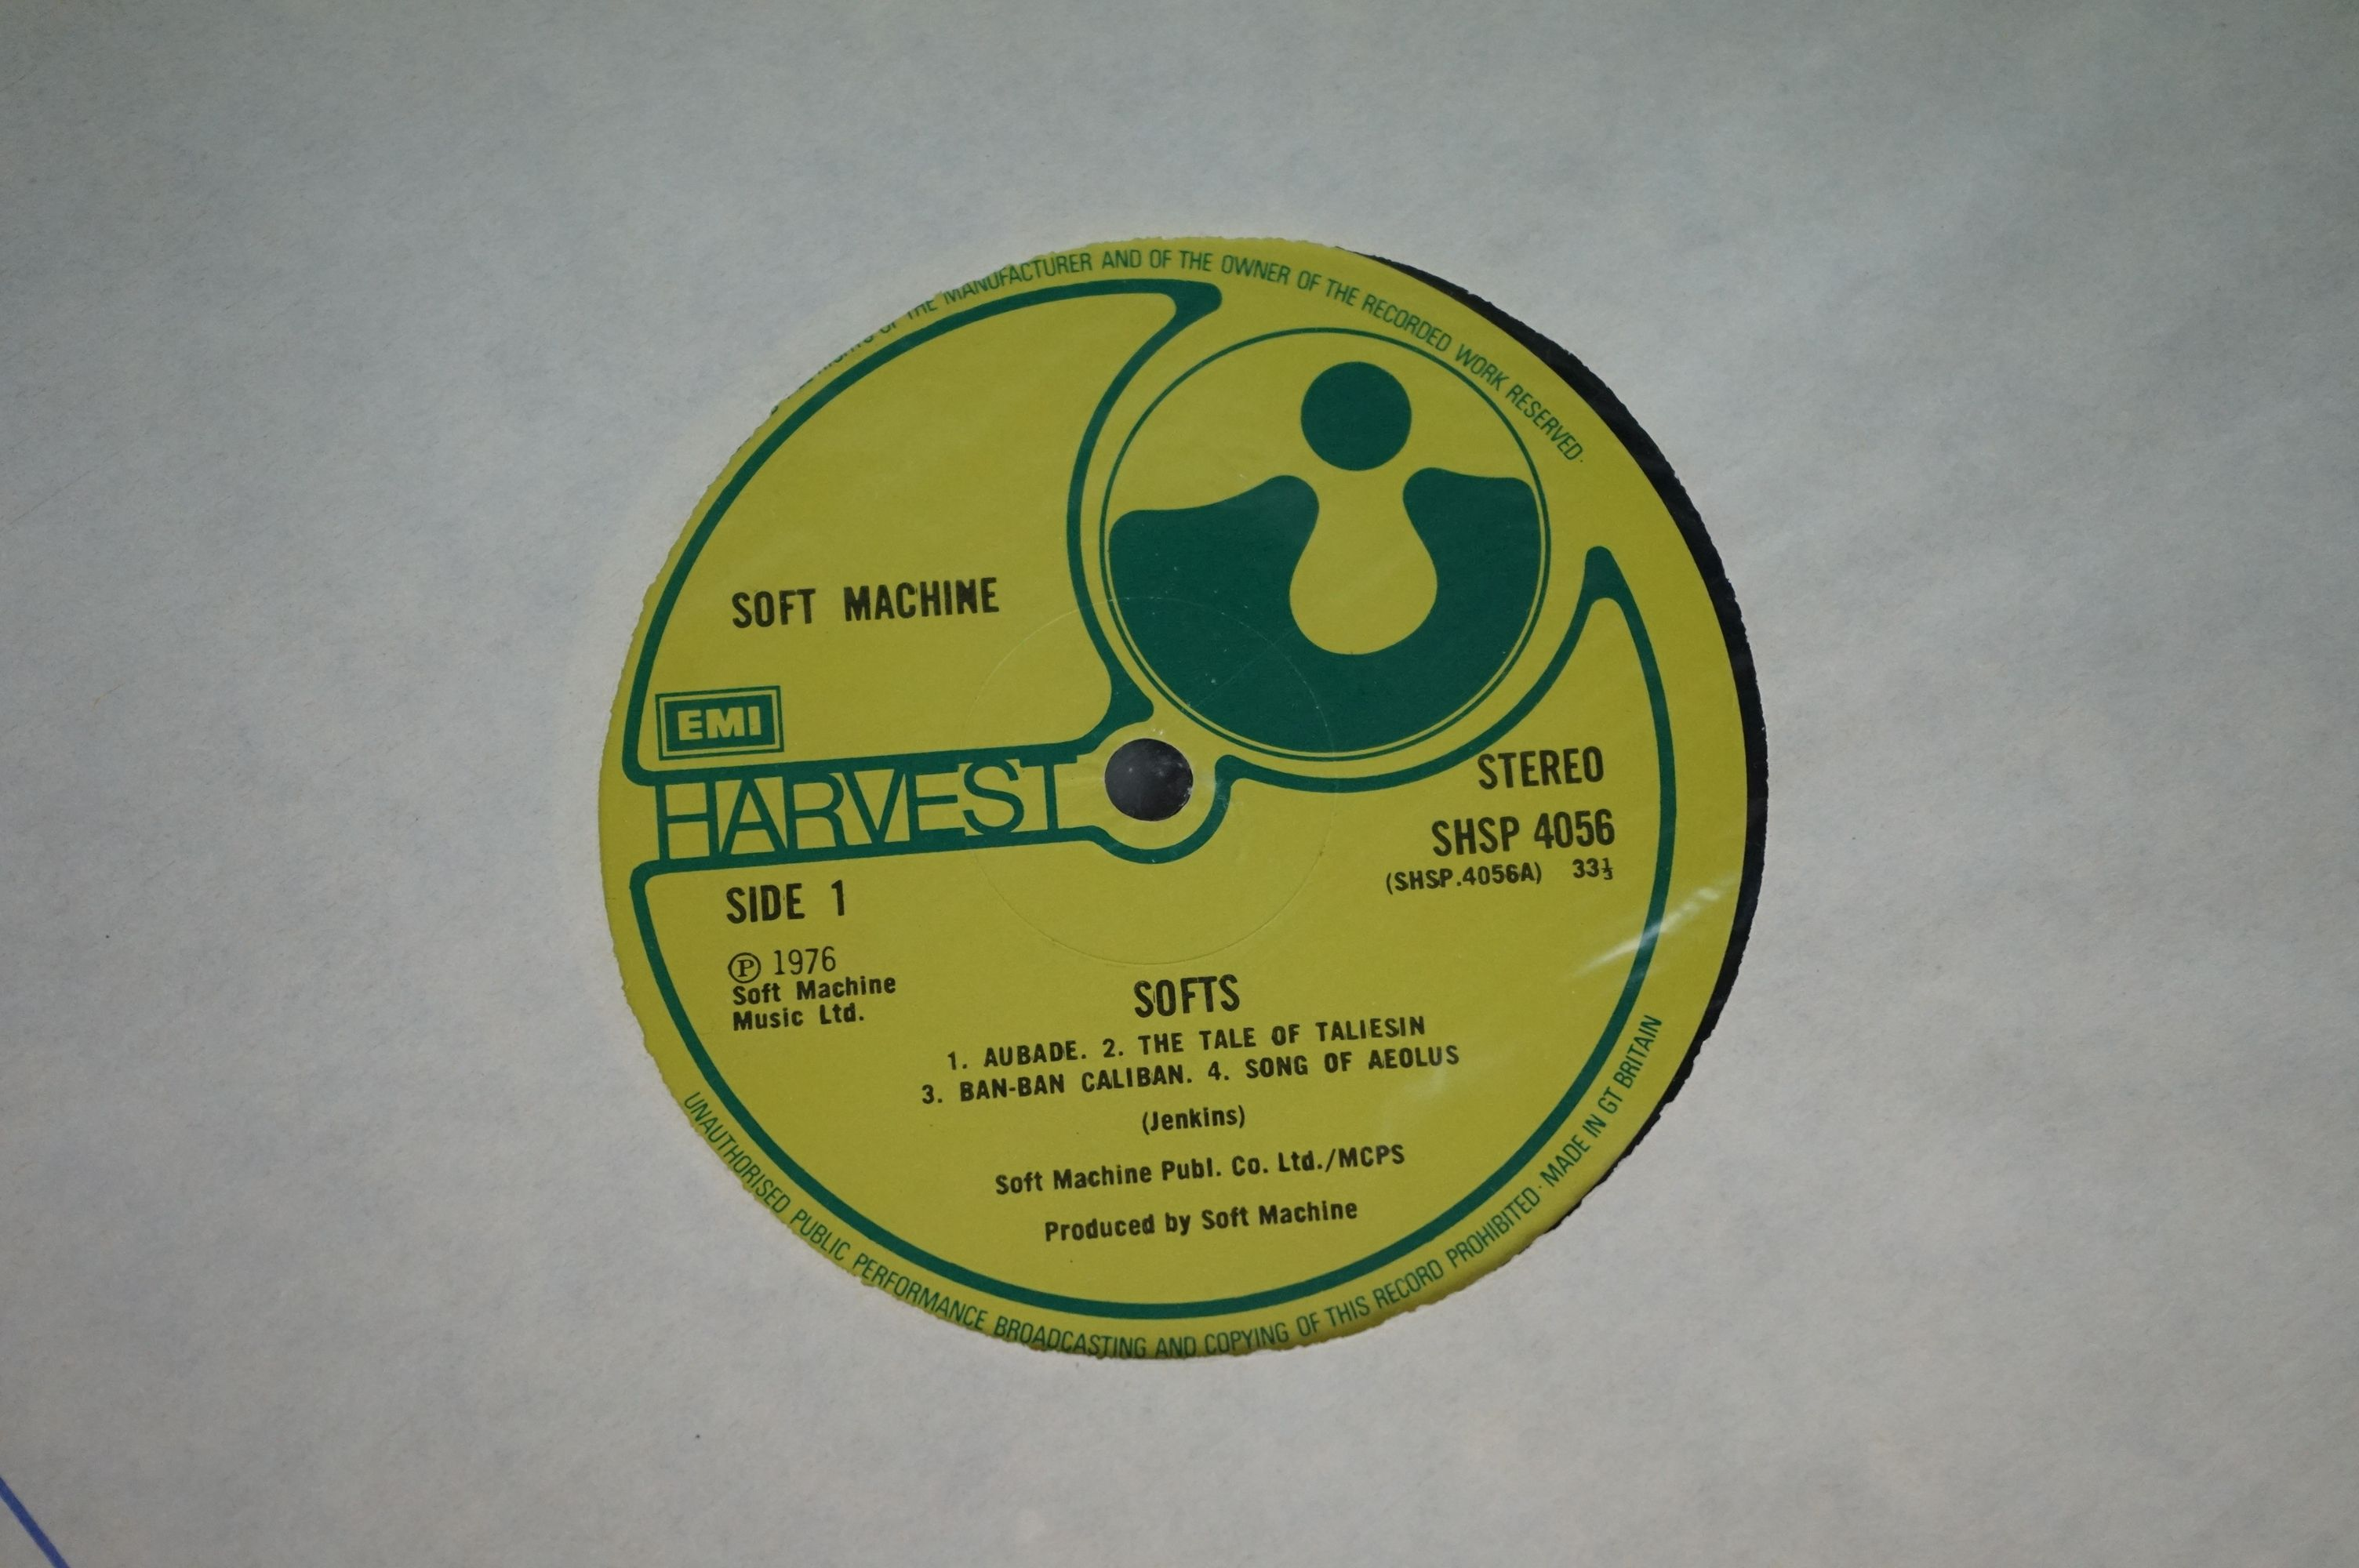 Vinyl - Two Soft Machine vinyl LP's to include Softs (EMI Records SHSP 4056), Volume Two (Probe - Image 9 of 9